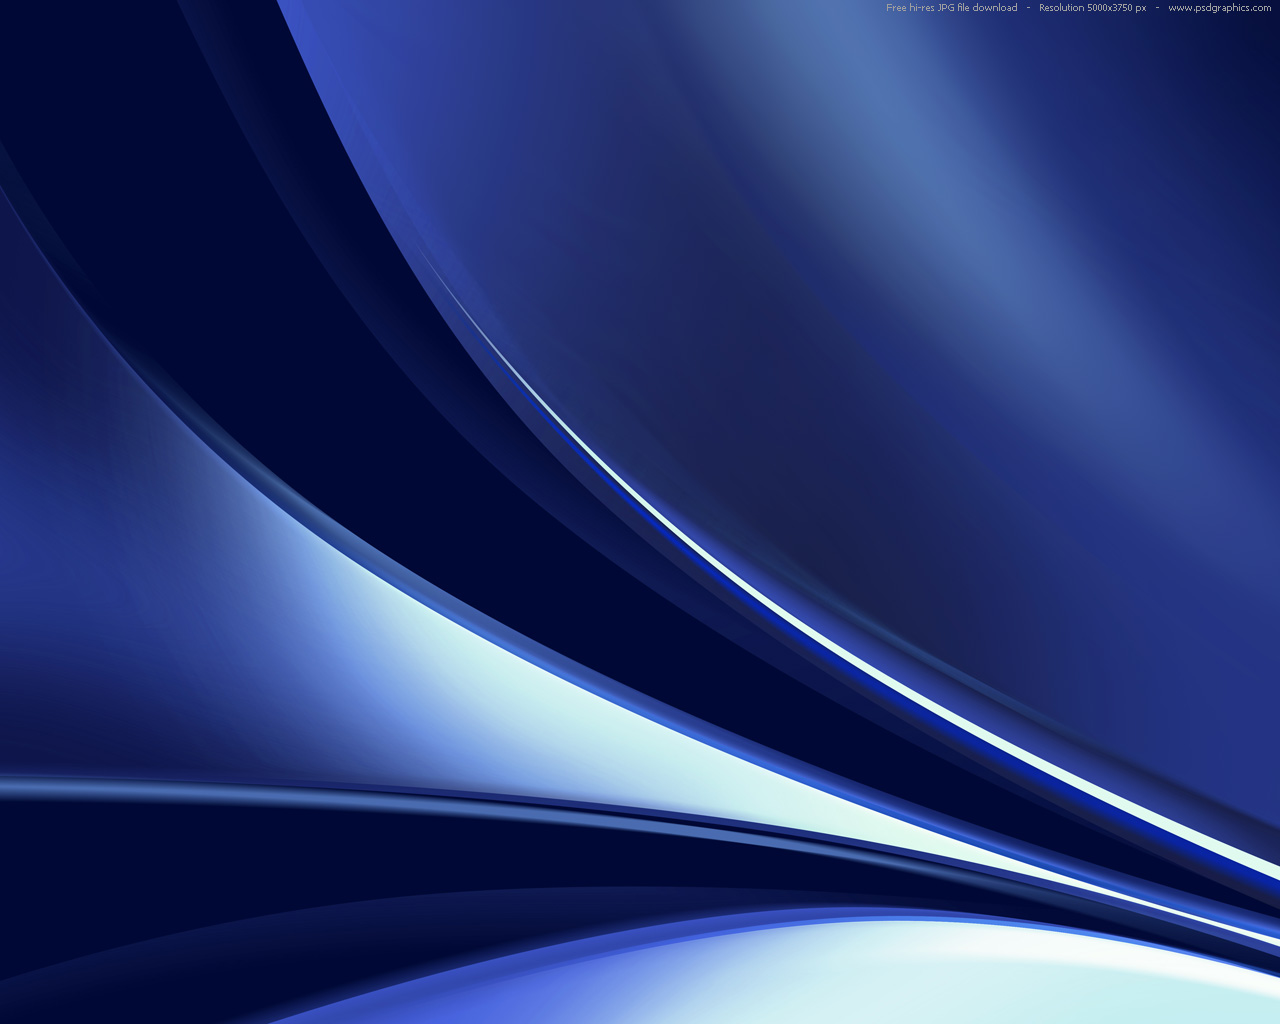 Abstract dark blue background PSDGraphics 1280x1024